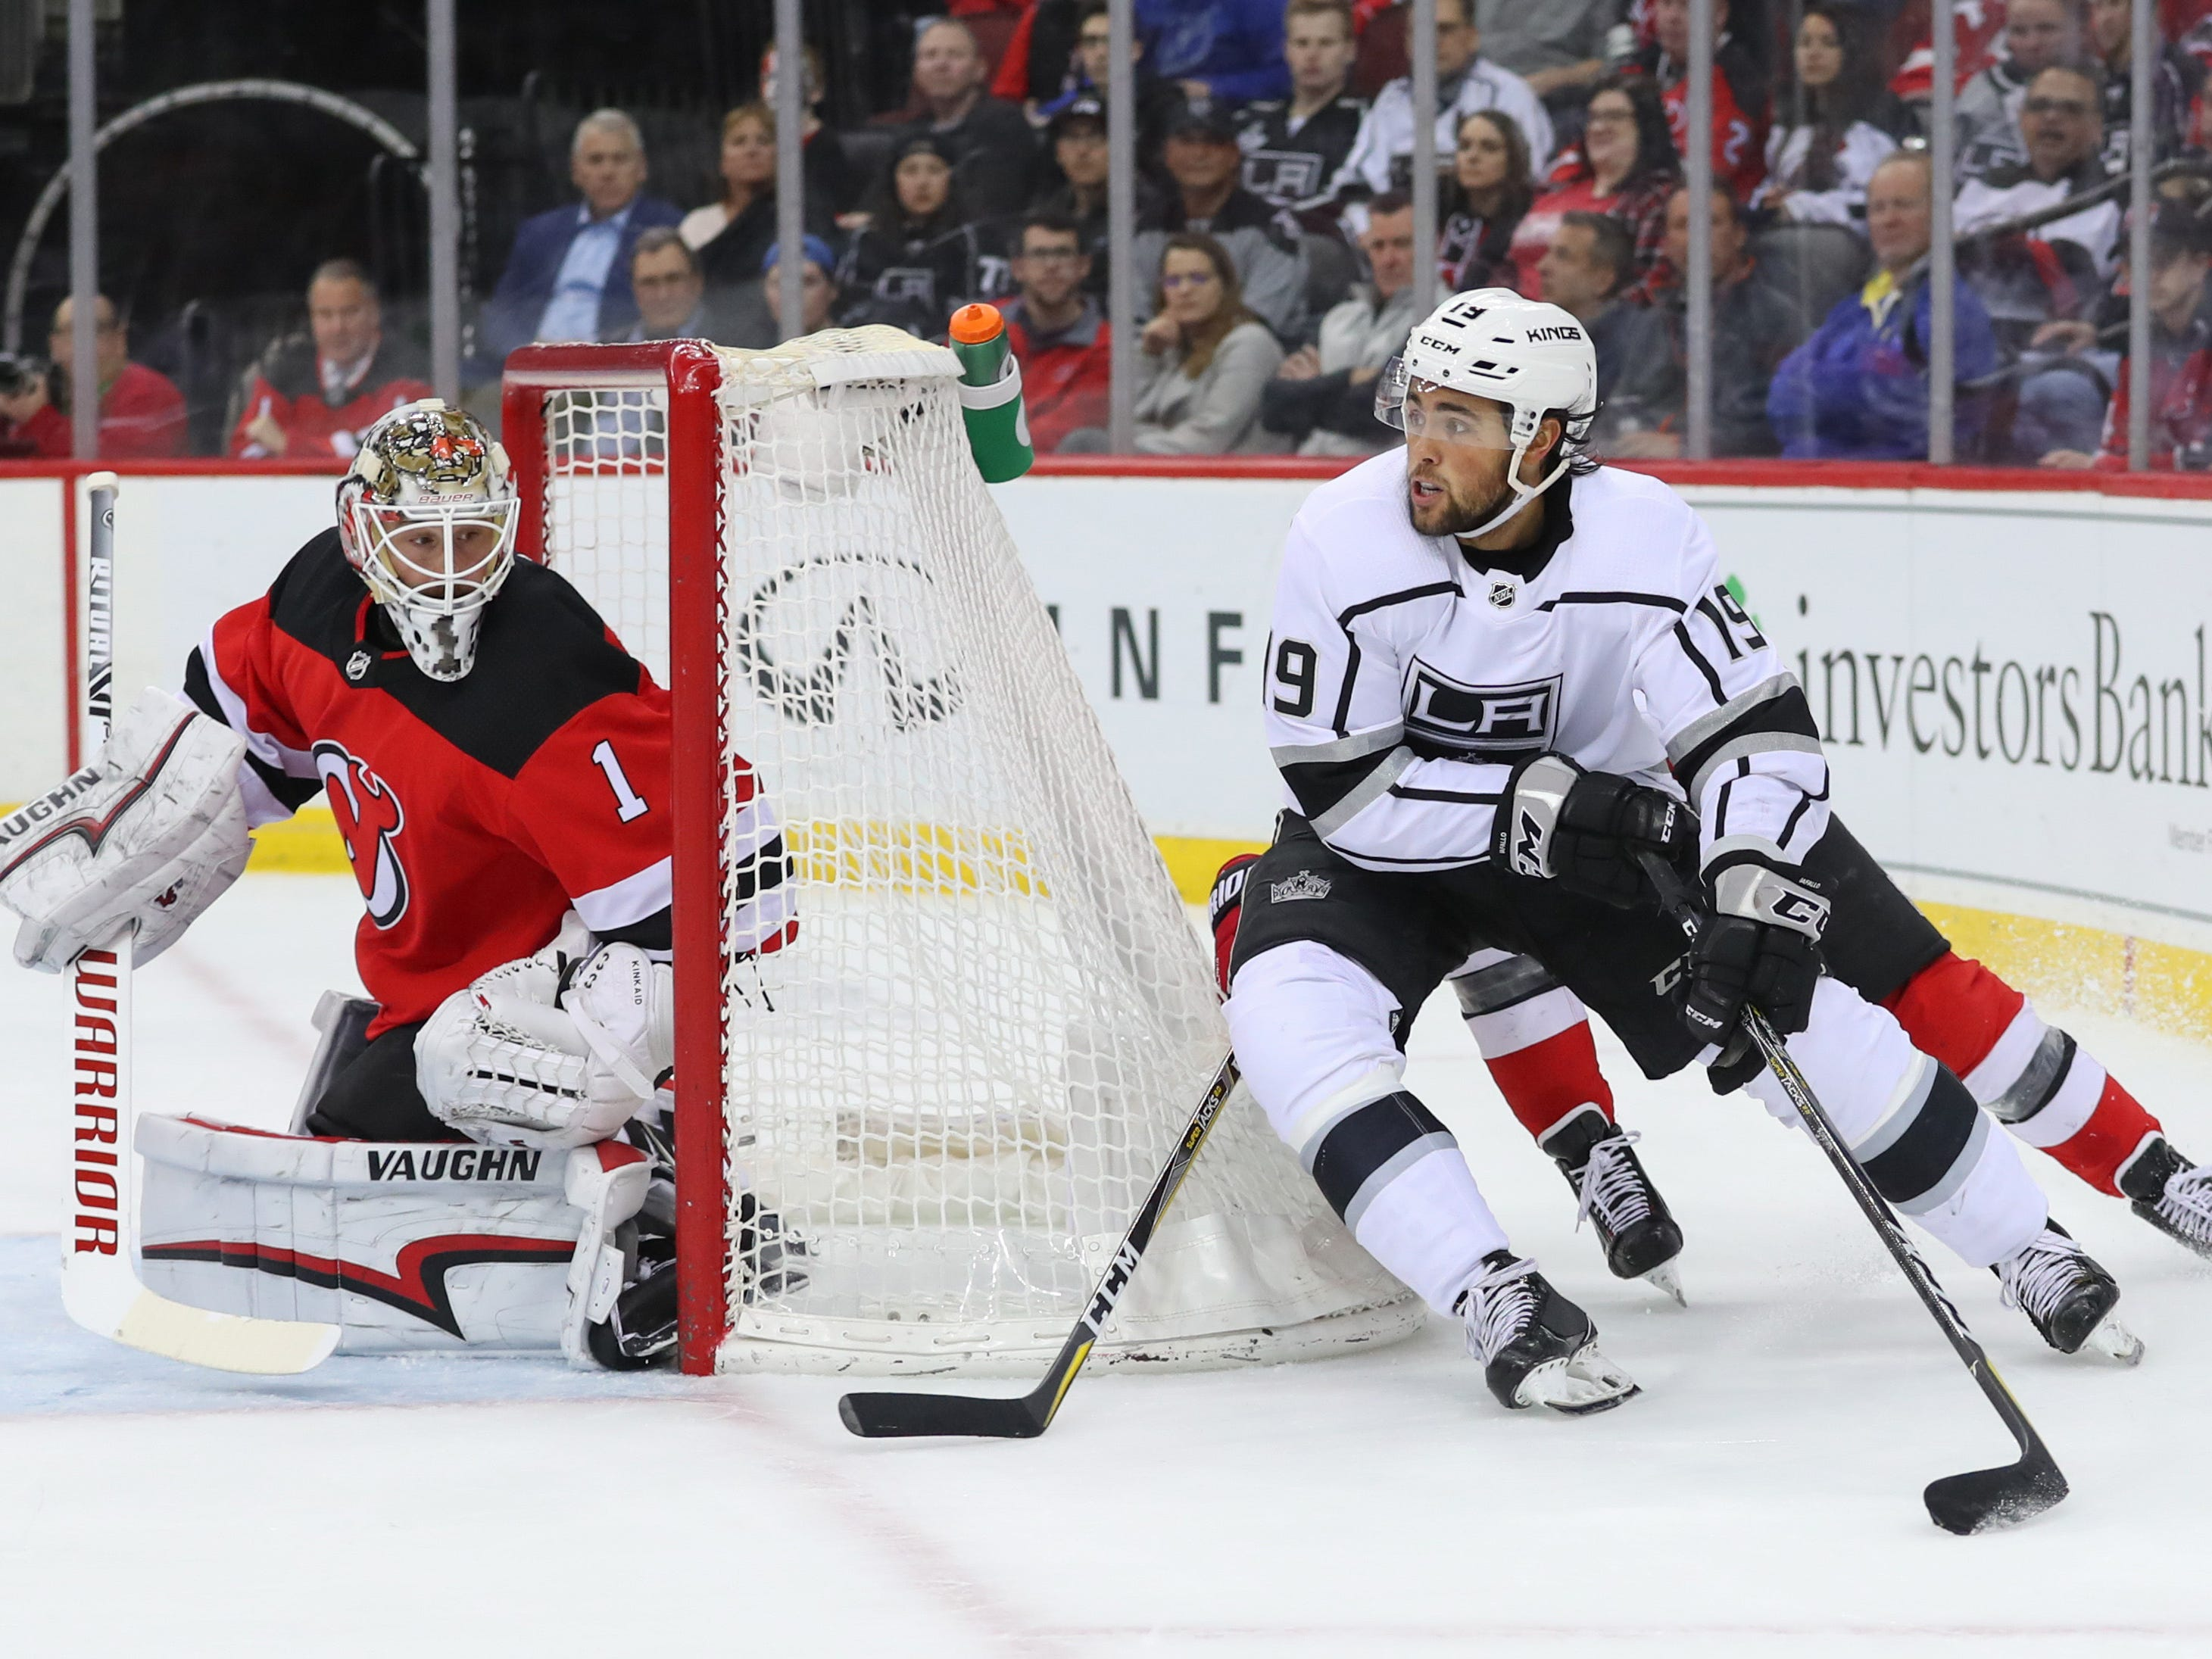 Feb 5, 2019; Newark, NJ, USA; Los Angeles Kings left wing Alex Iafallo (19) skates with the puck as New Jersey Devils goaltender Keith Kinkaid (1) defends during the first period at Prudential Center.